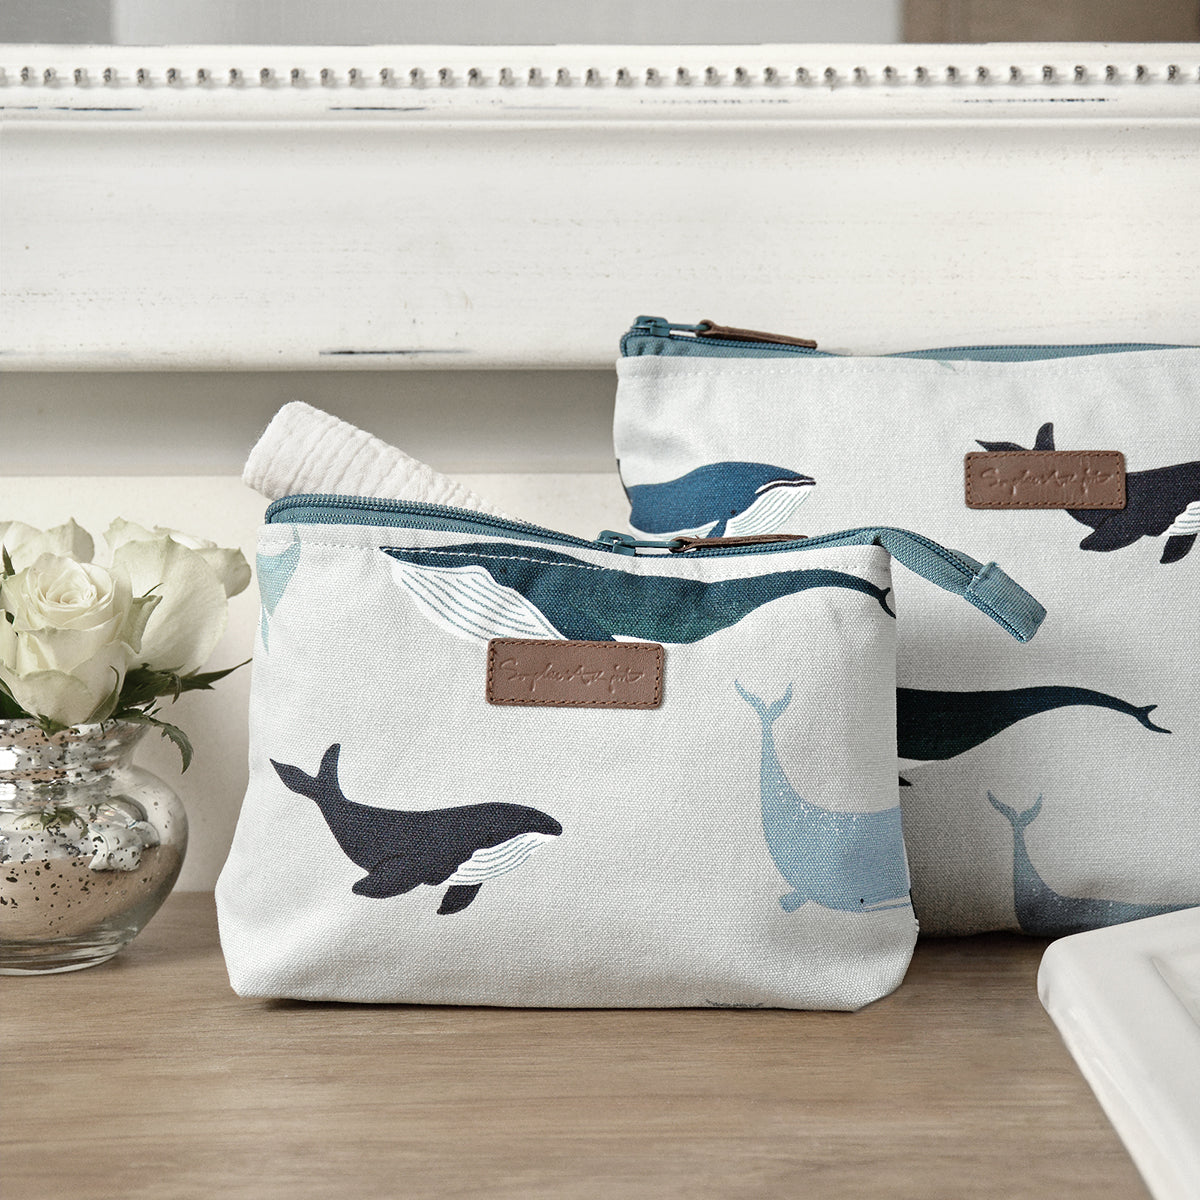 Whales make up and wash bag by Sophie Allport